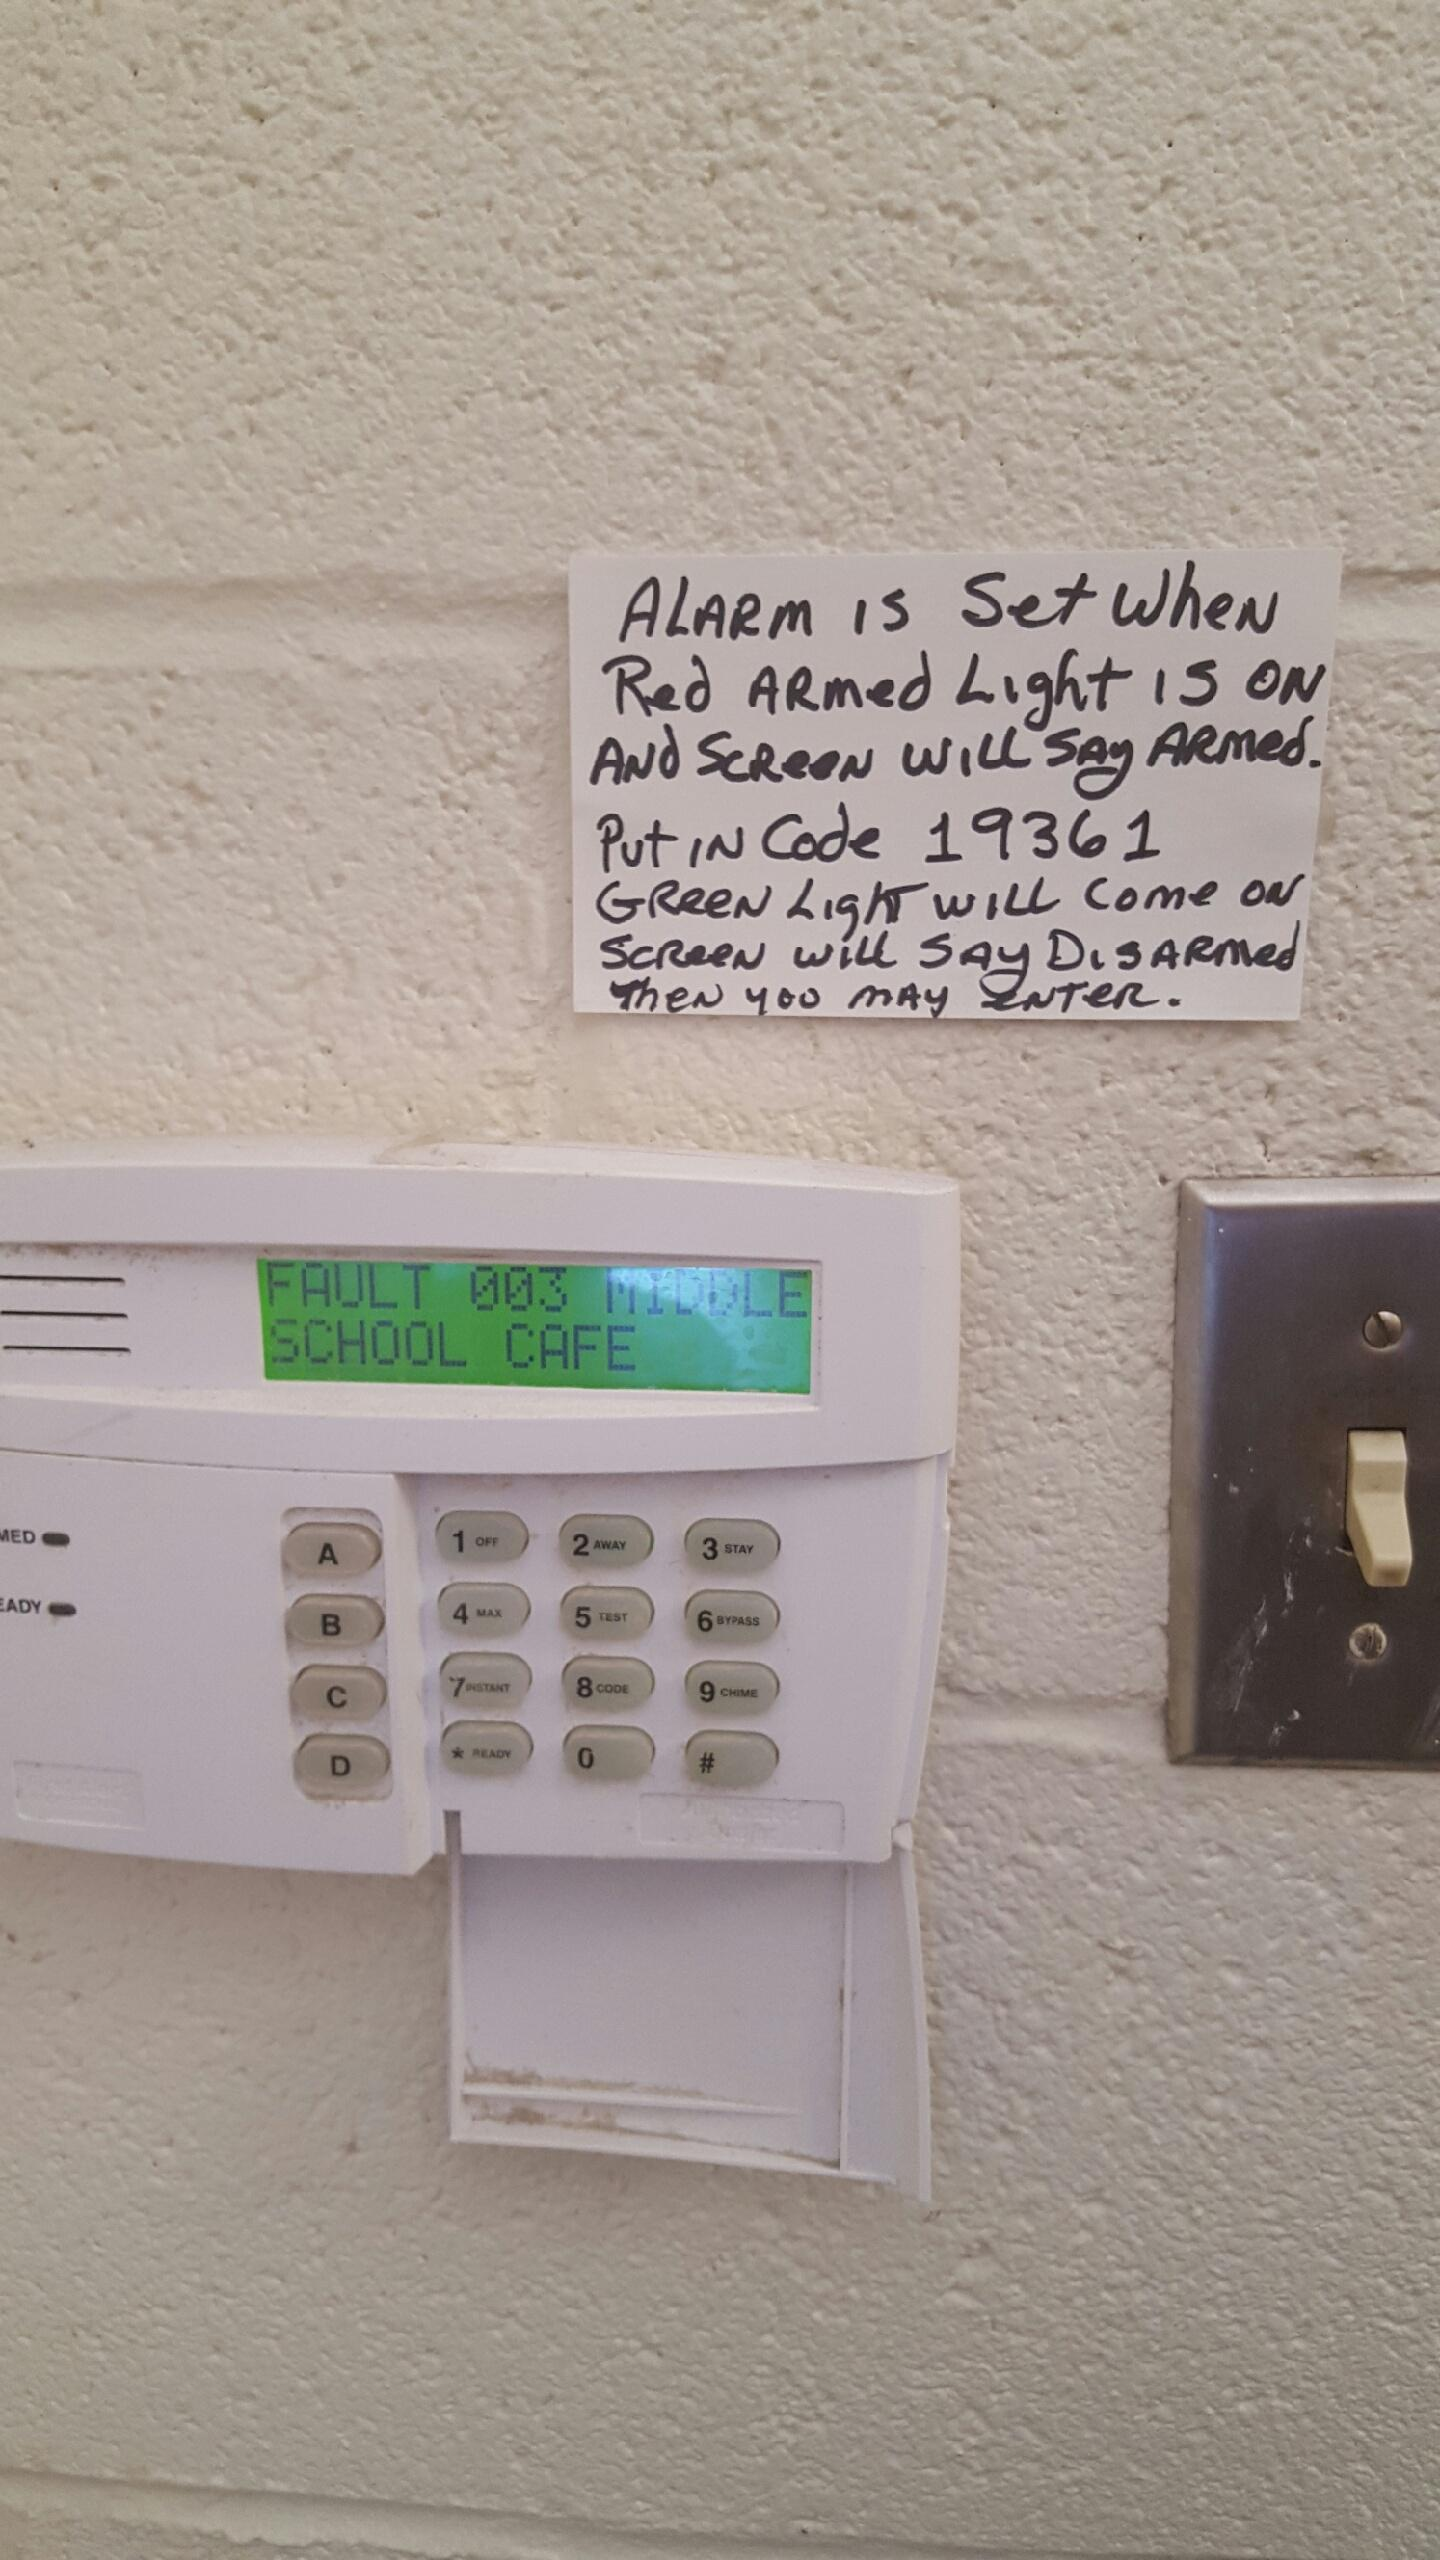 Alarm systems business plan